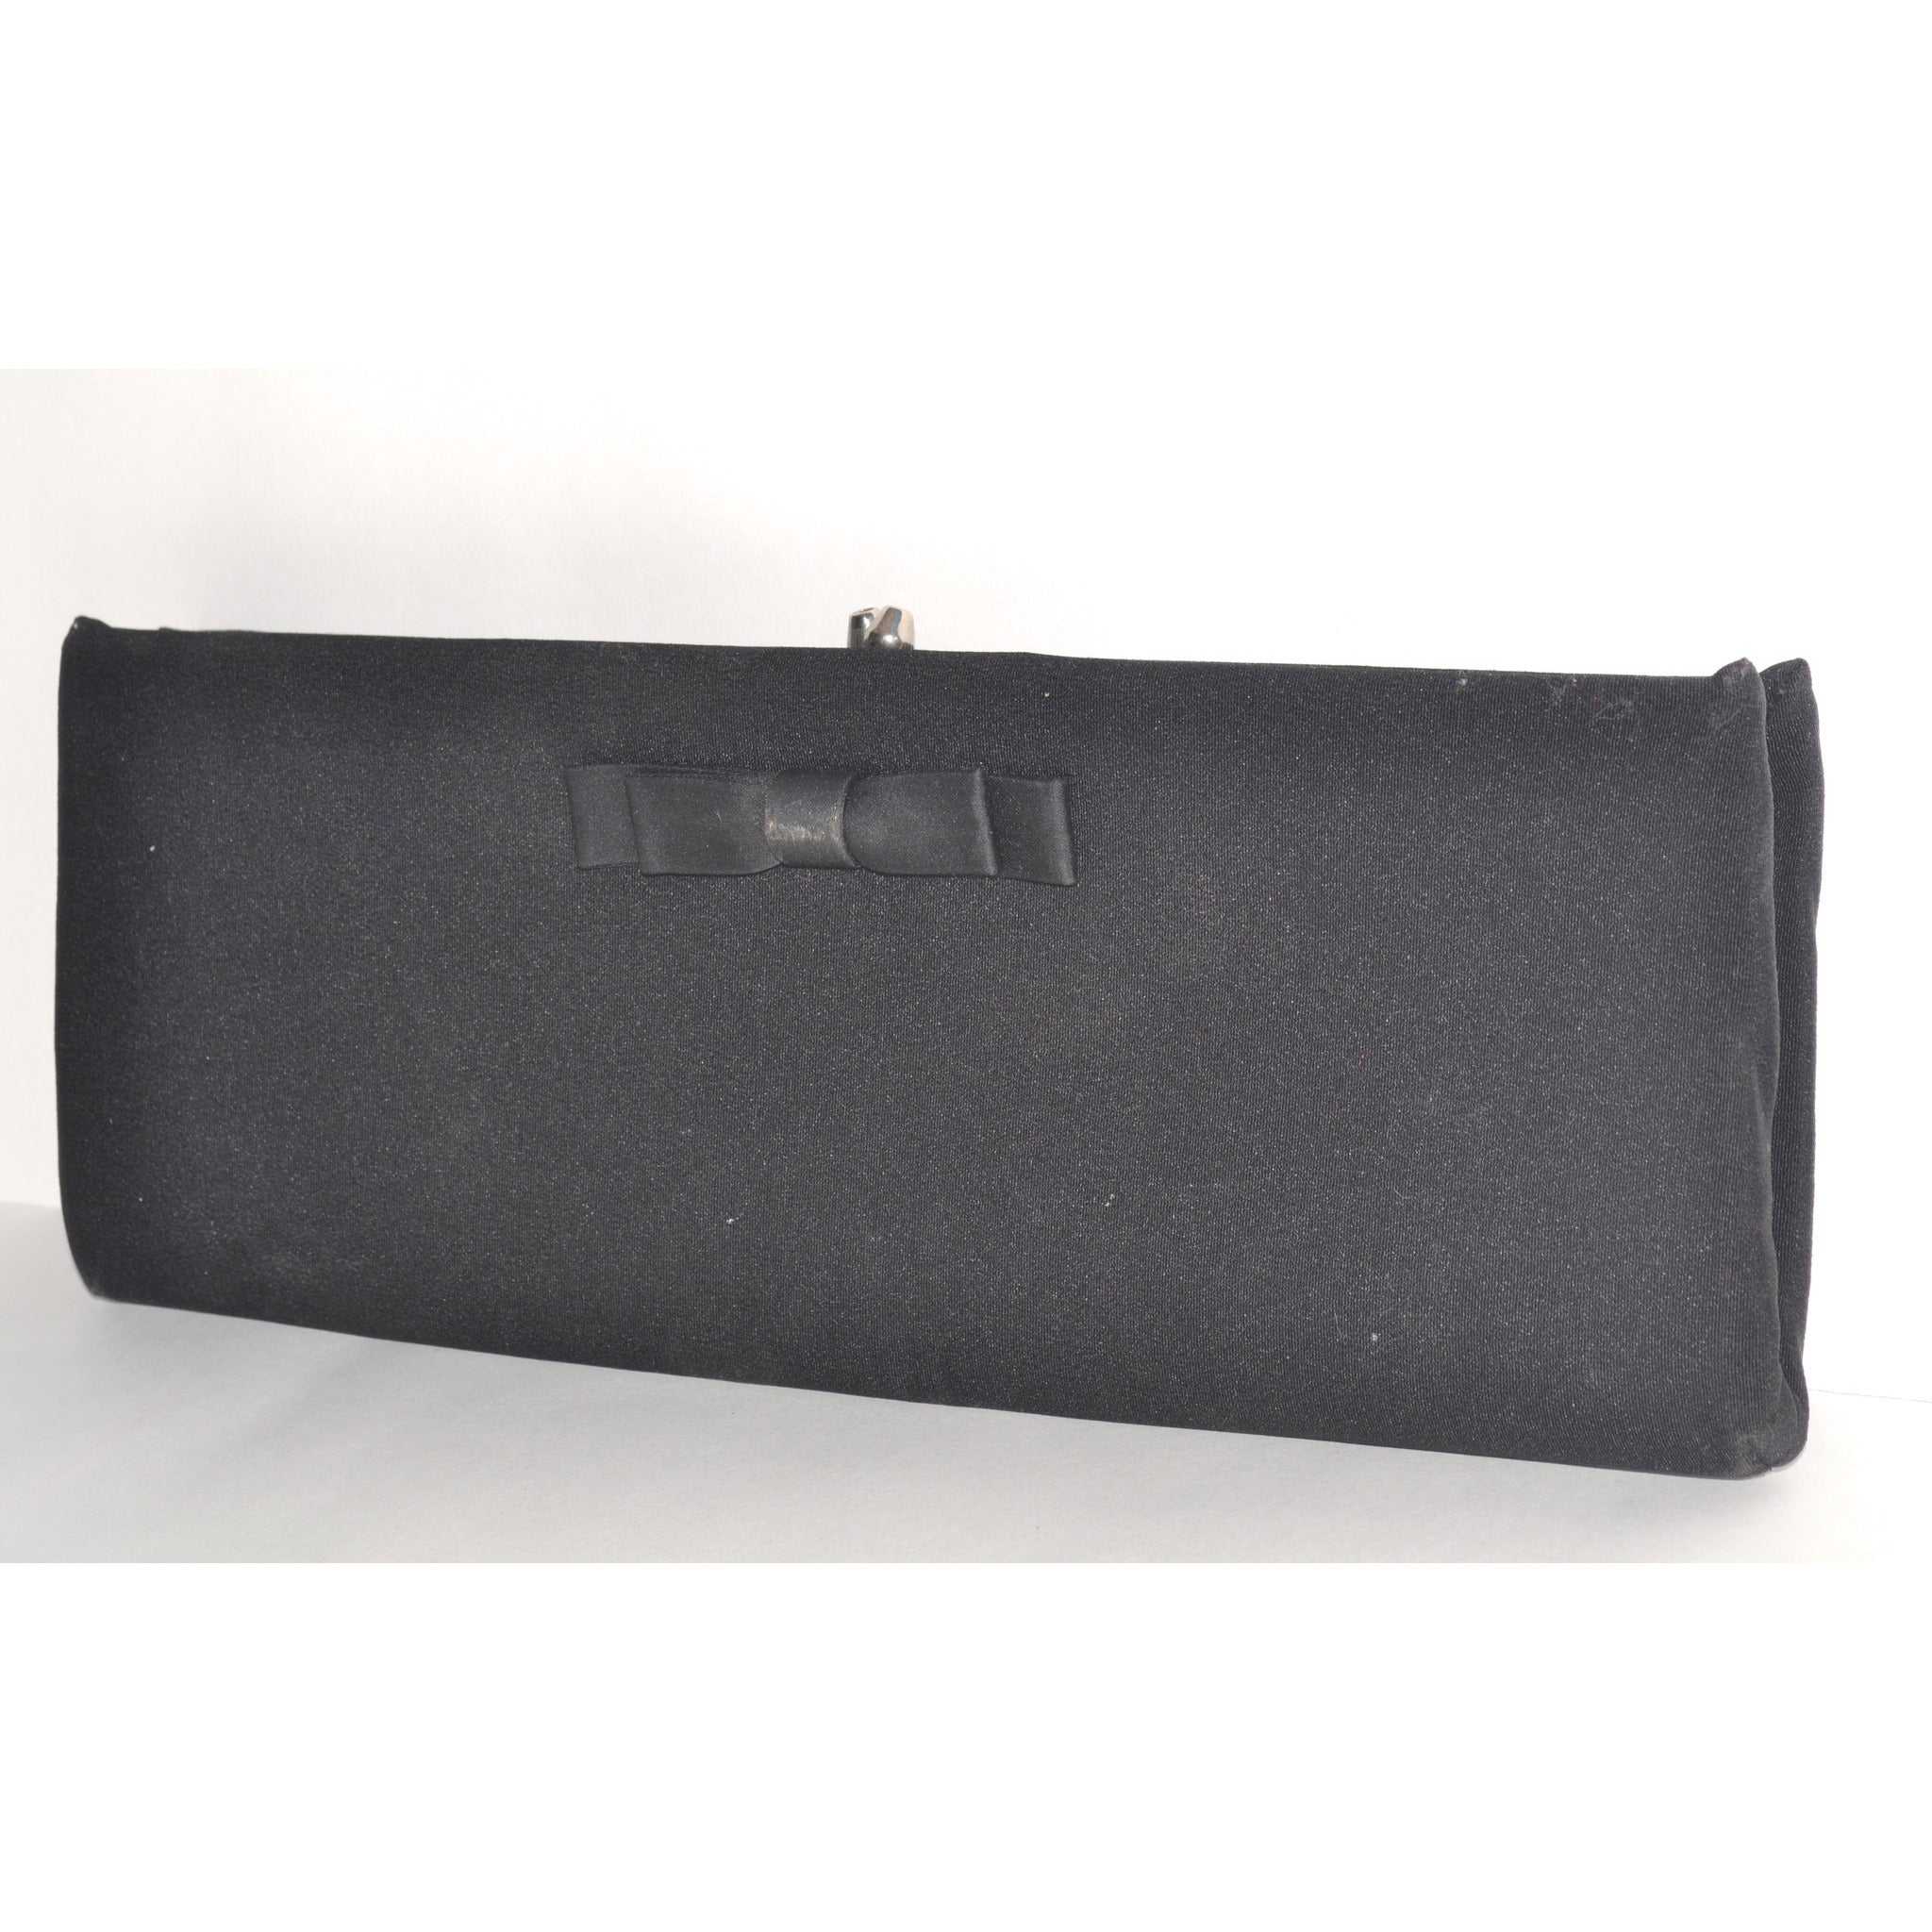 Vintage Bowtie Black Clutch Purse By HL